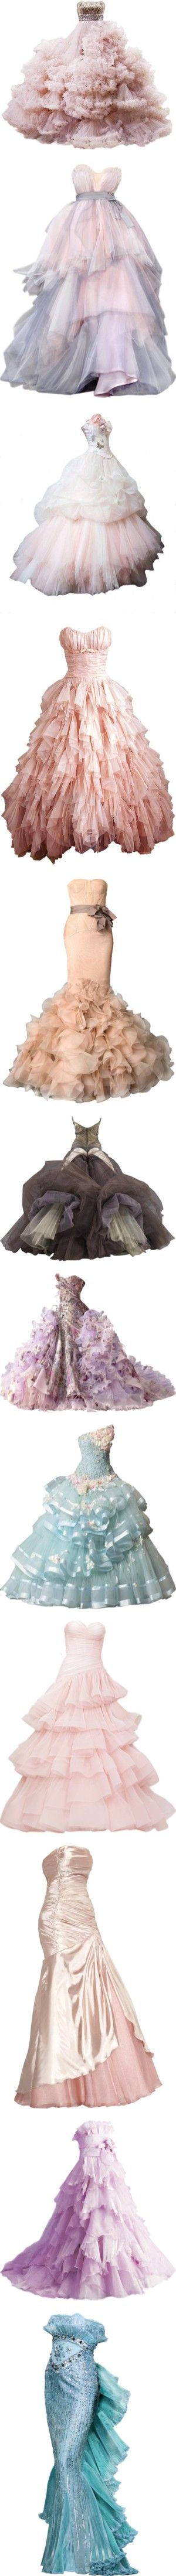 *-* Gorgeous Gowns *-* #gorgeousgowns